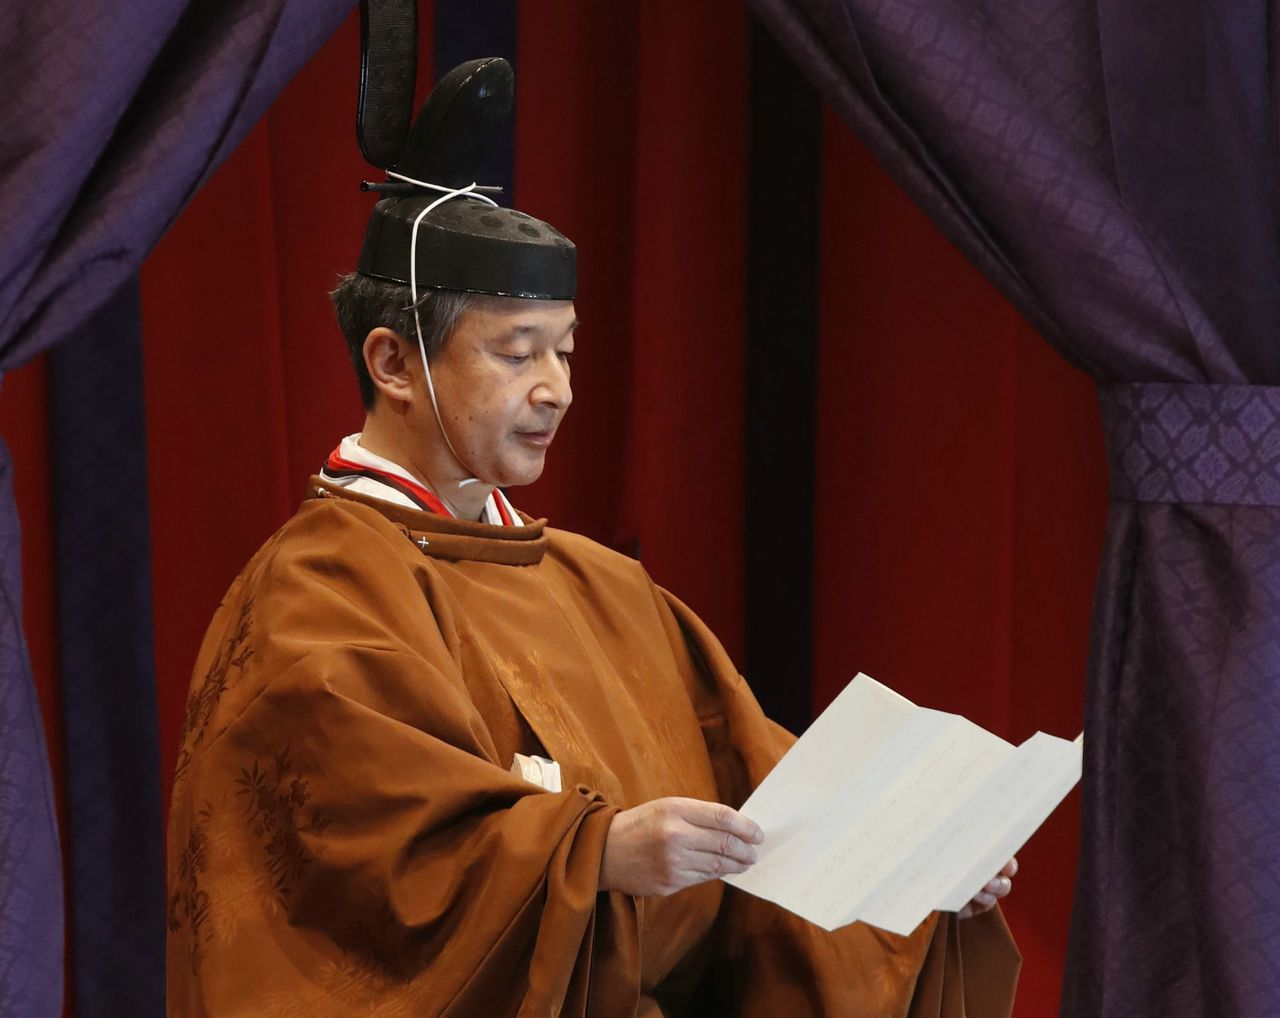 Emperor Naruhito reads his statement at the Sokuirei Seiden no Gi enthronement ceremony carried out in Tokyo on October 22, 2019. (© Jiji; pool photo)